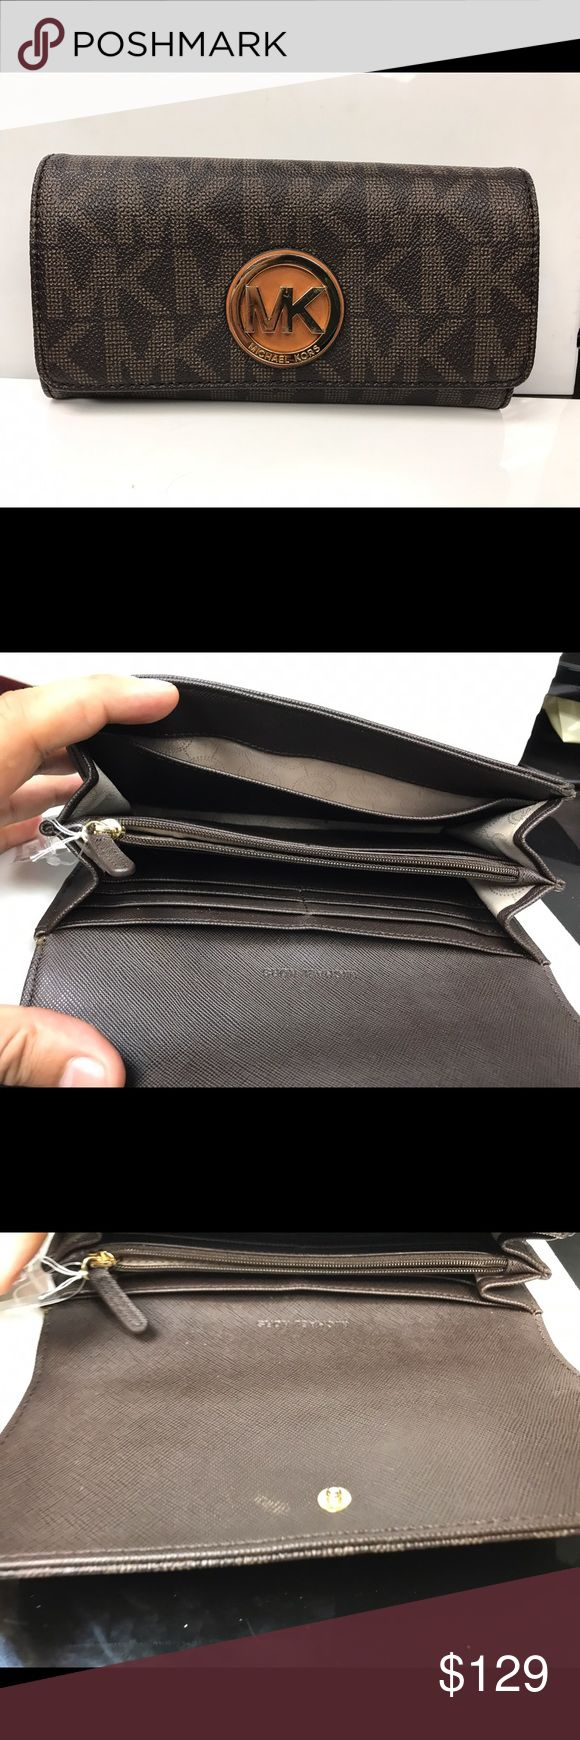 Michale kors women's wristlet Was used only 3-5 times  no scratches on leather only some scratches non Michale kors logo. Michael Kors Bags Clutches & Wristlets